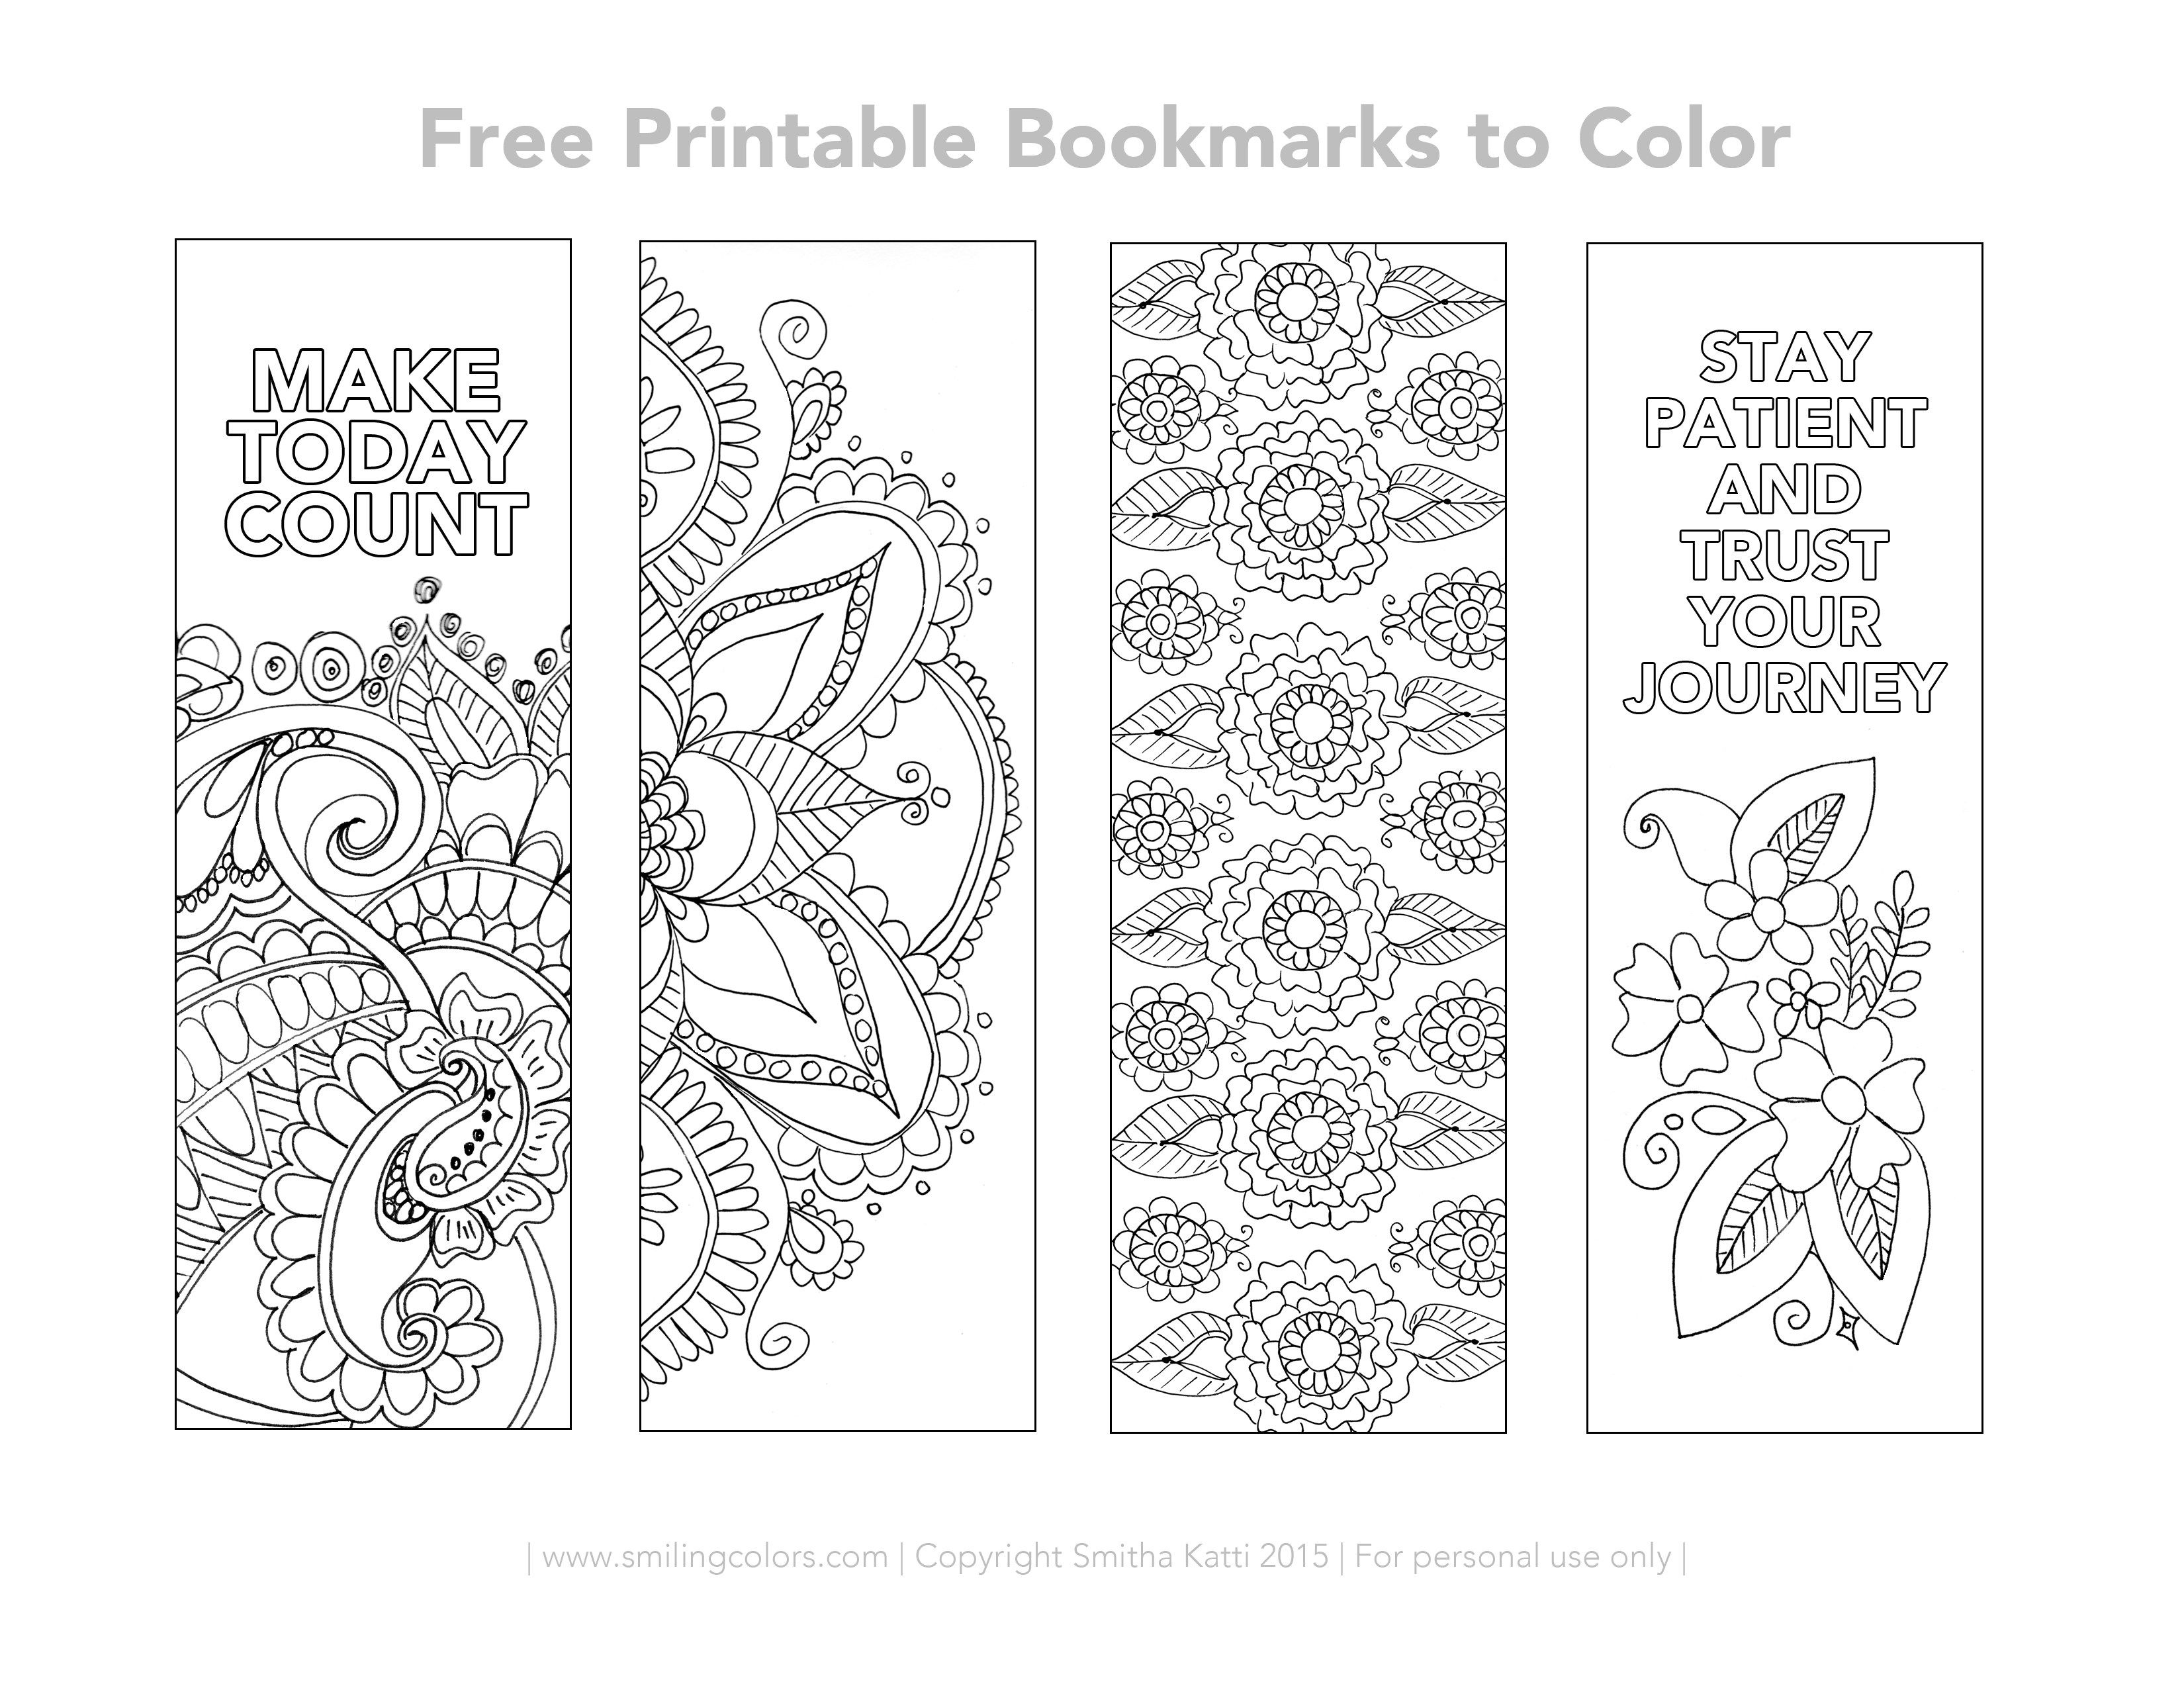 Free Printable Bookmarks to Color | dibujos | Pinterest ...